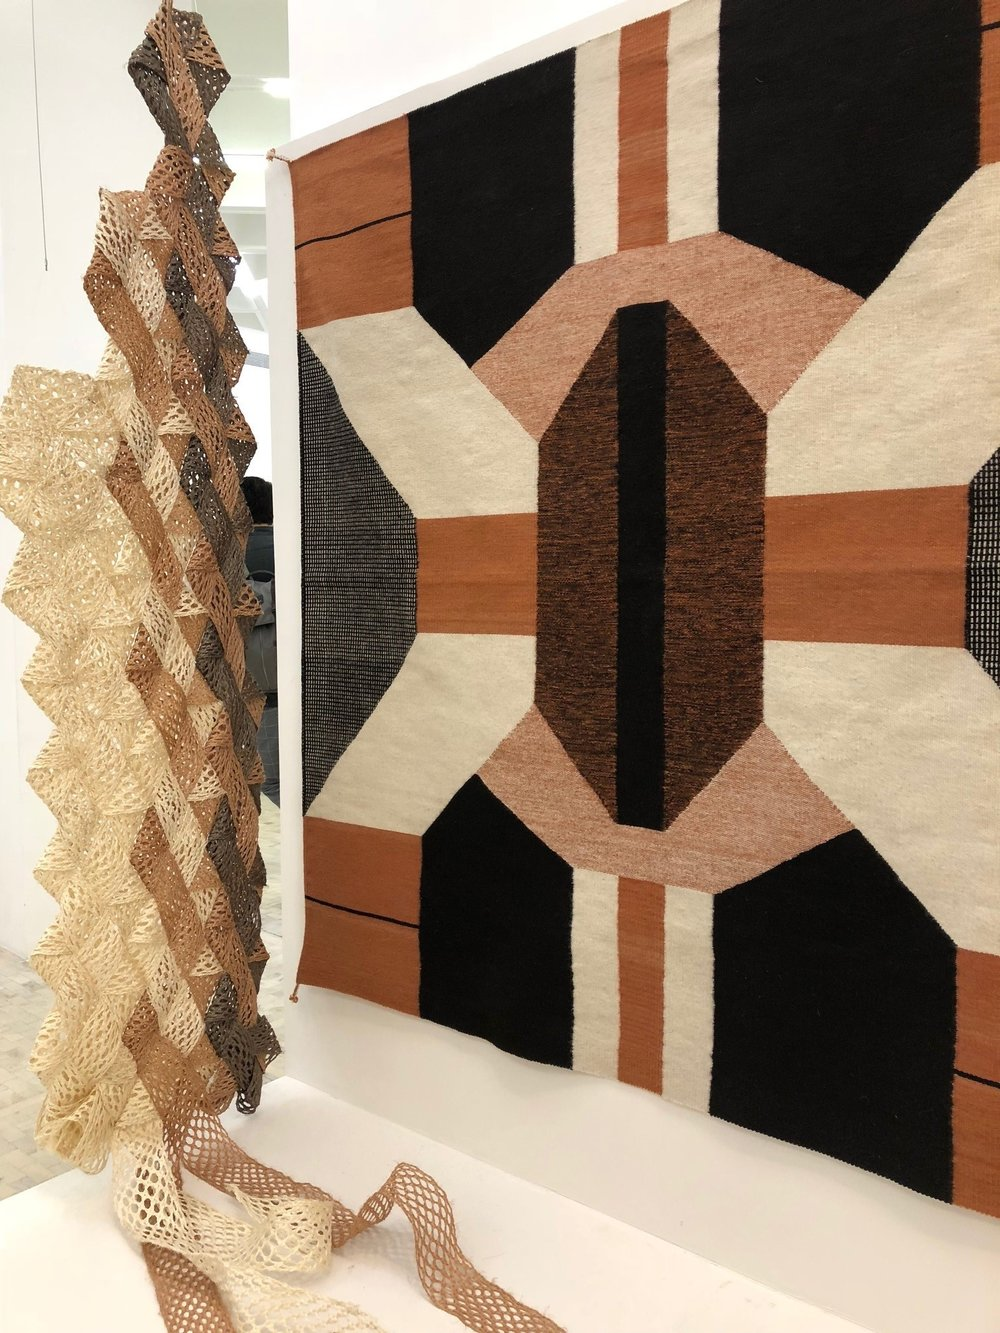 Textiles & materiality at Design Week Mexico